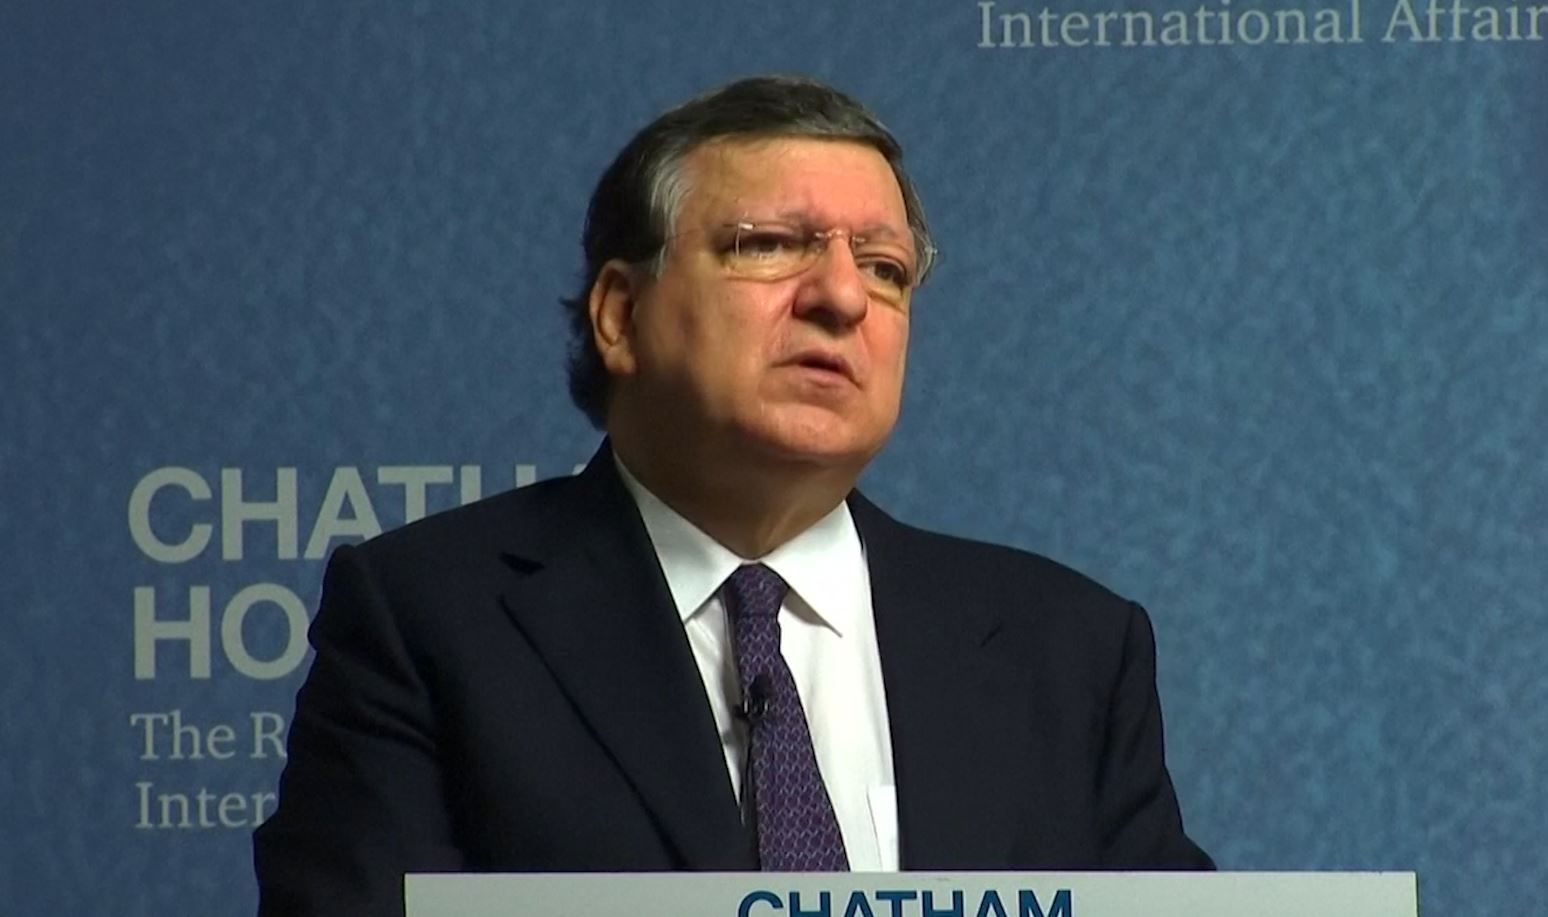 Barroso Warns Cameron of 'Historic Mistake' Over Europe